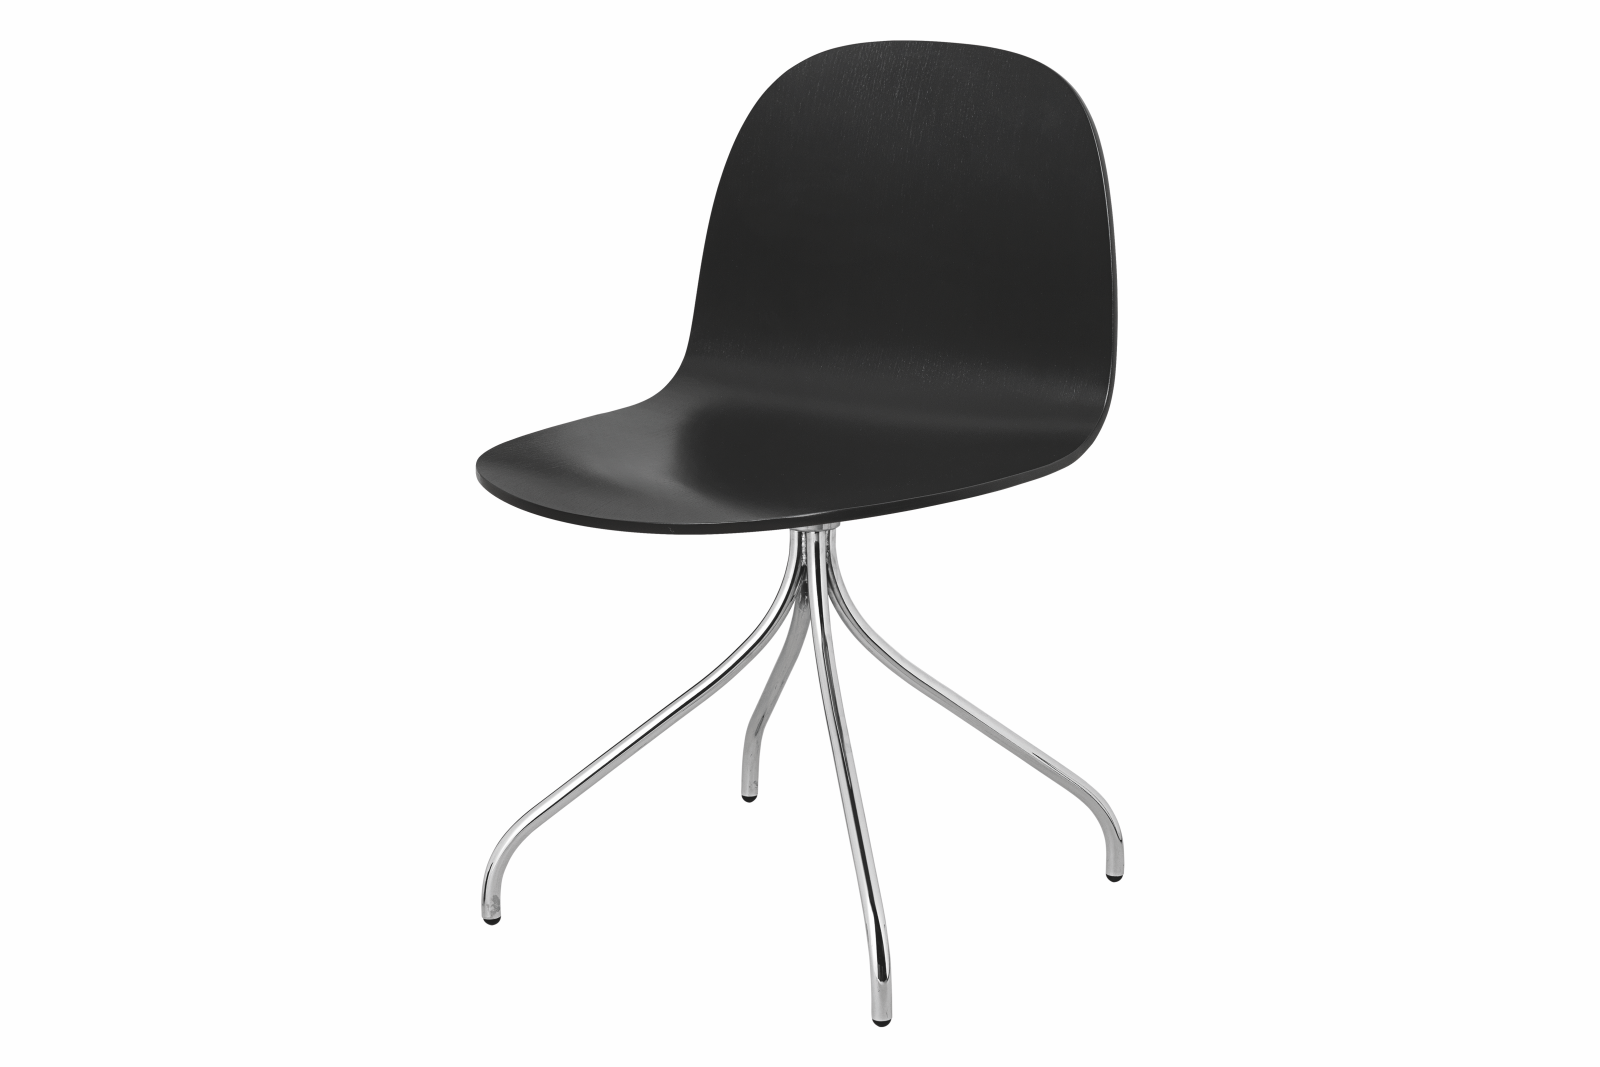 2D Swivel-base Dining Chair Unupholstered Gubi Wood Black Stained Birch, Gubi Metal Chrome